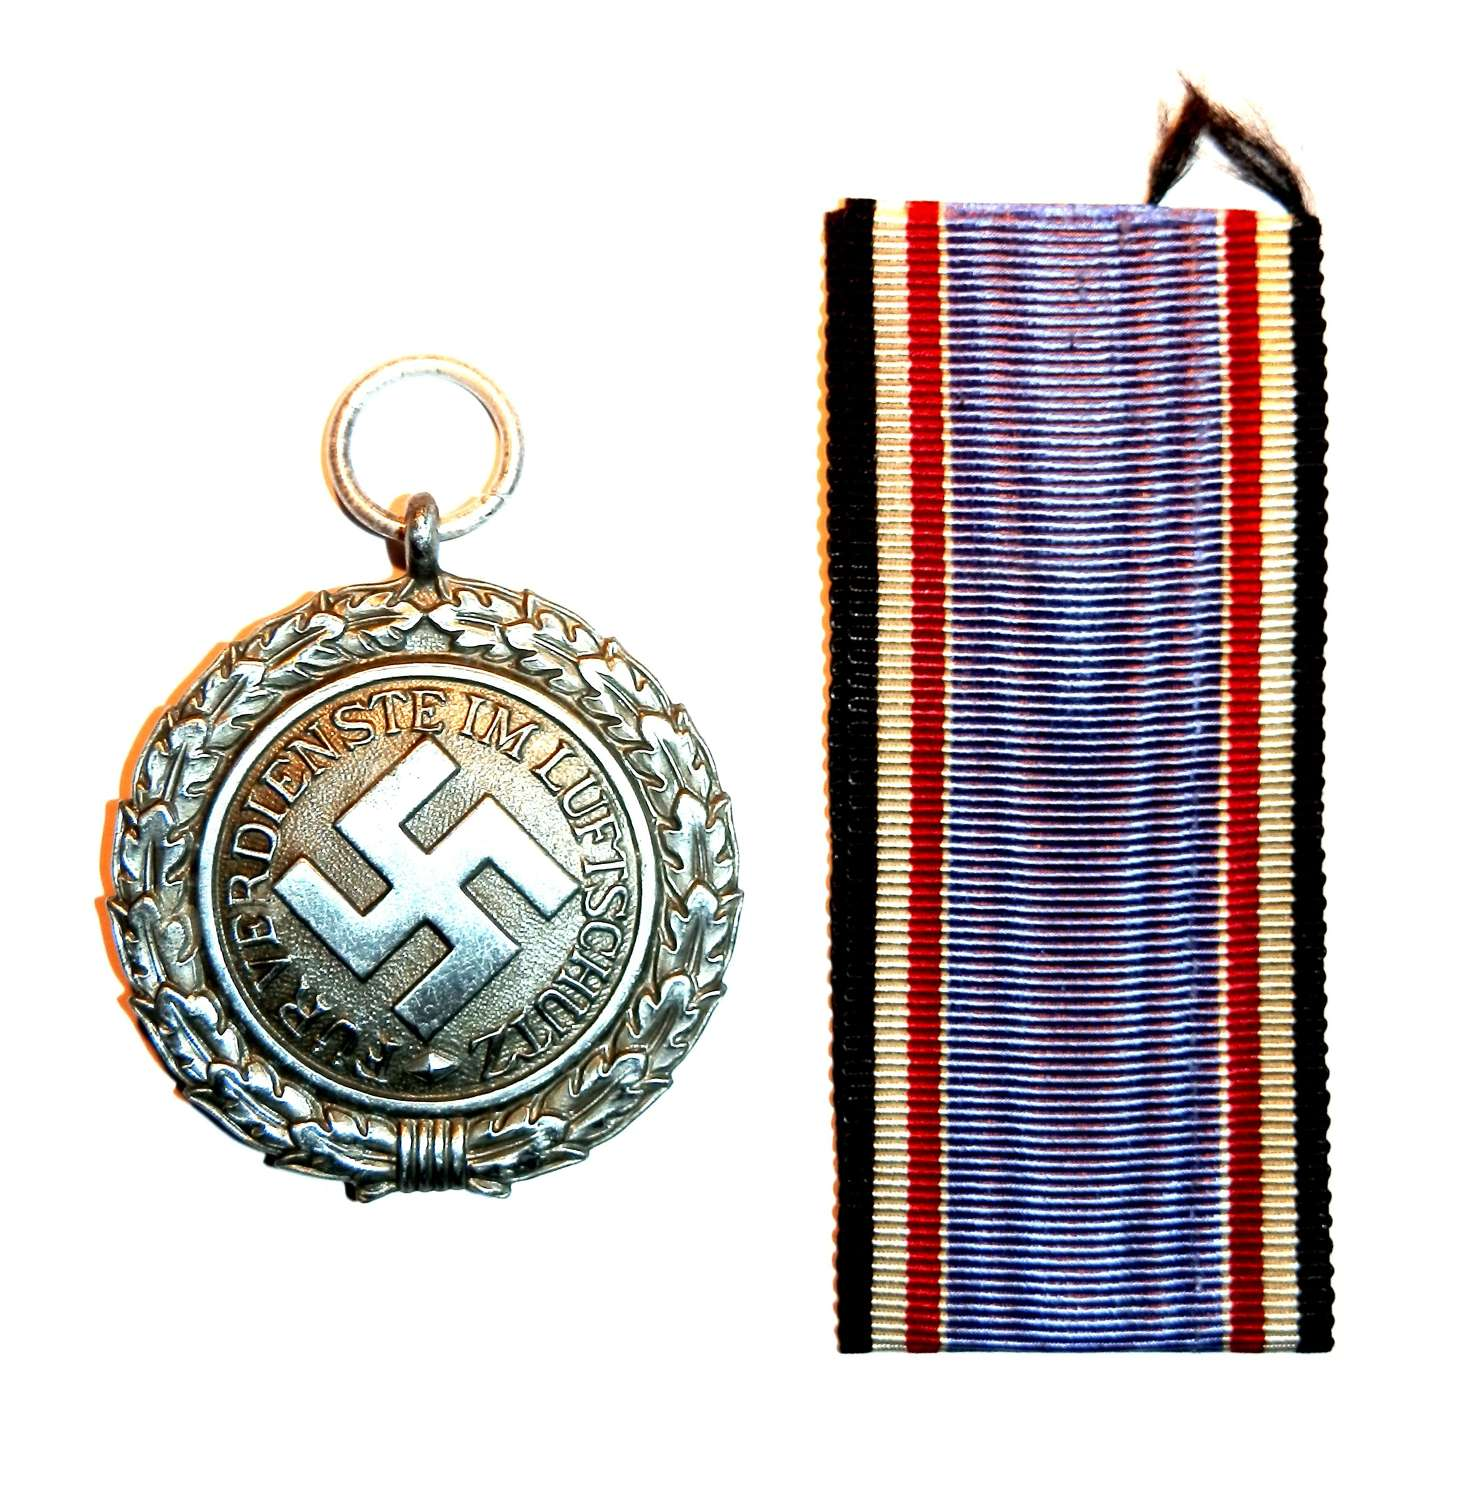 German Air Raid Warden 2nd Level Medal.